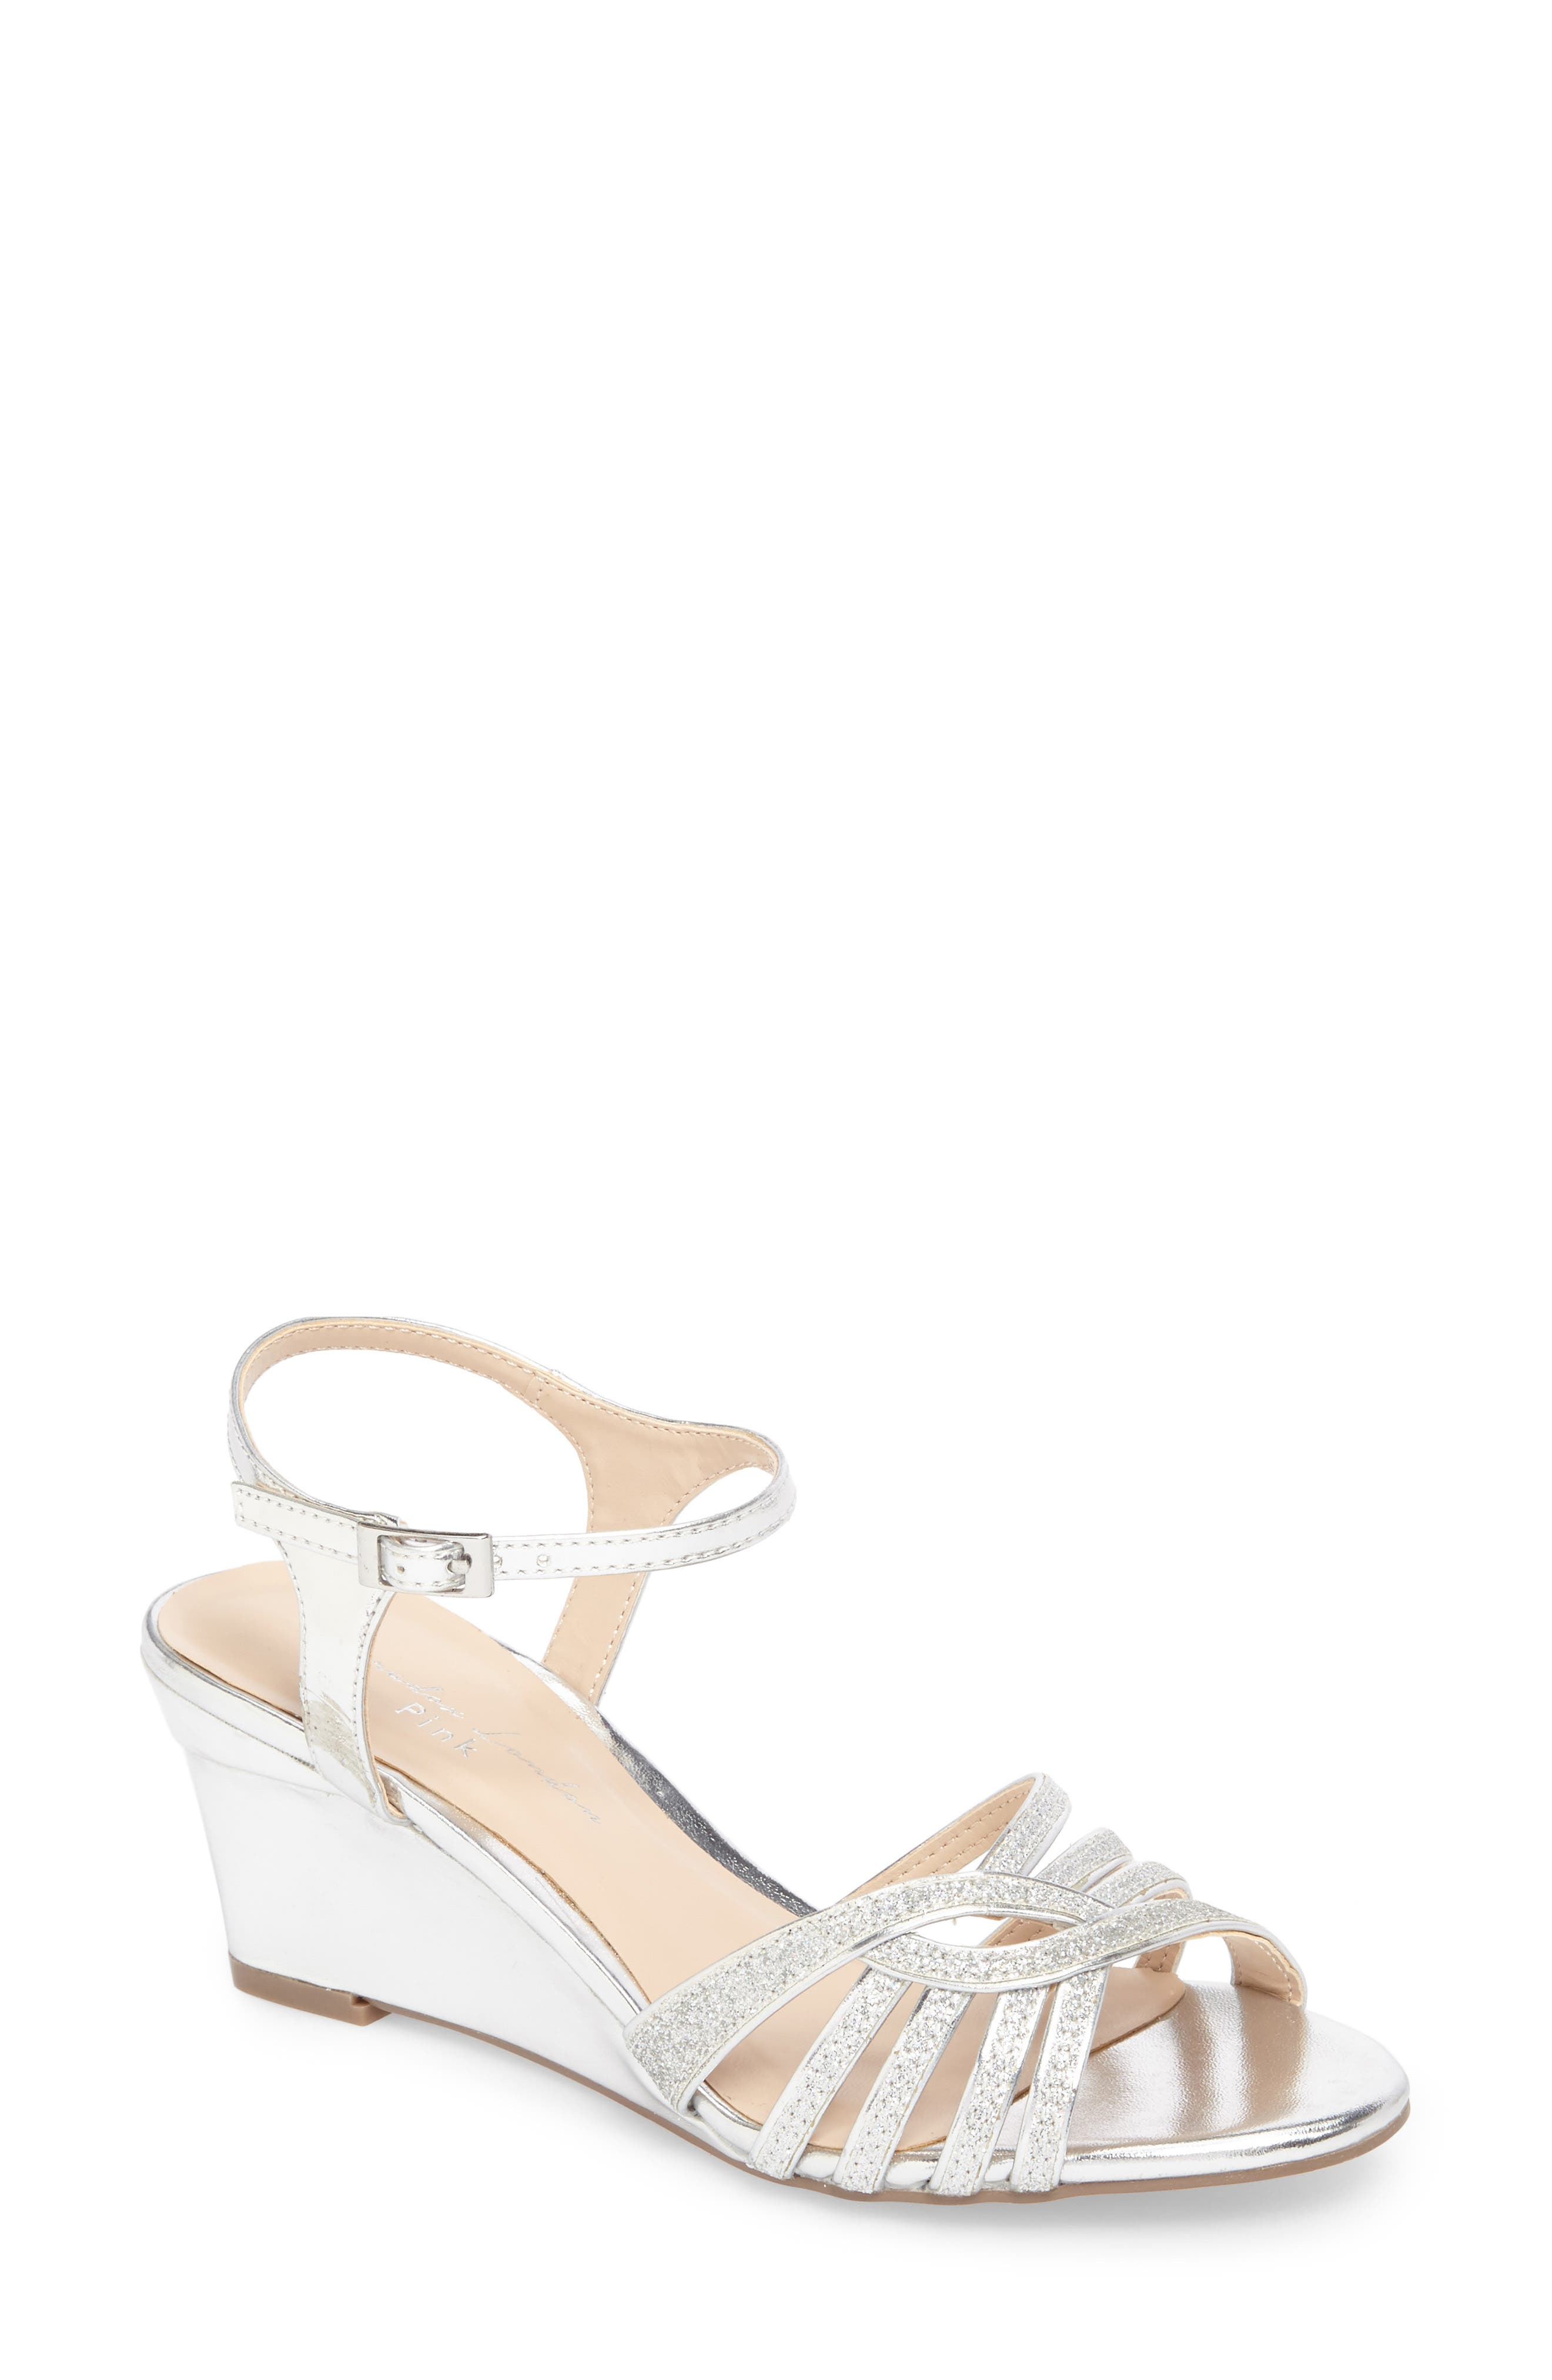 PARADOX LONDON PINK,                             Karianne Wedge Sandal,                             Main thumbnail 1, color,                             040